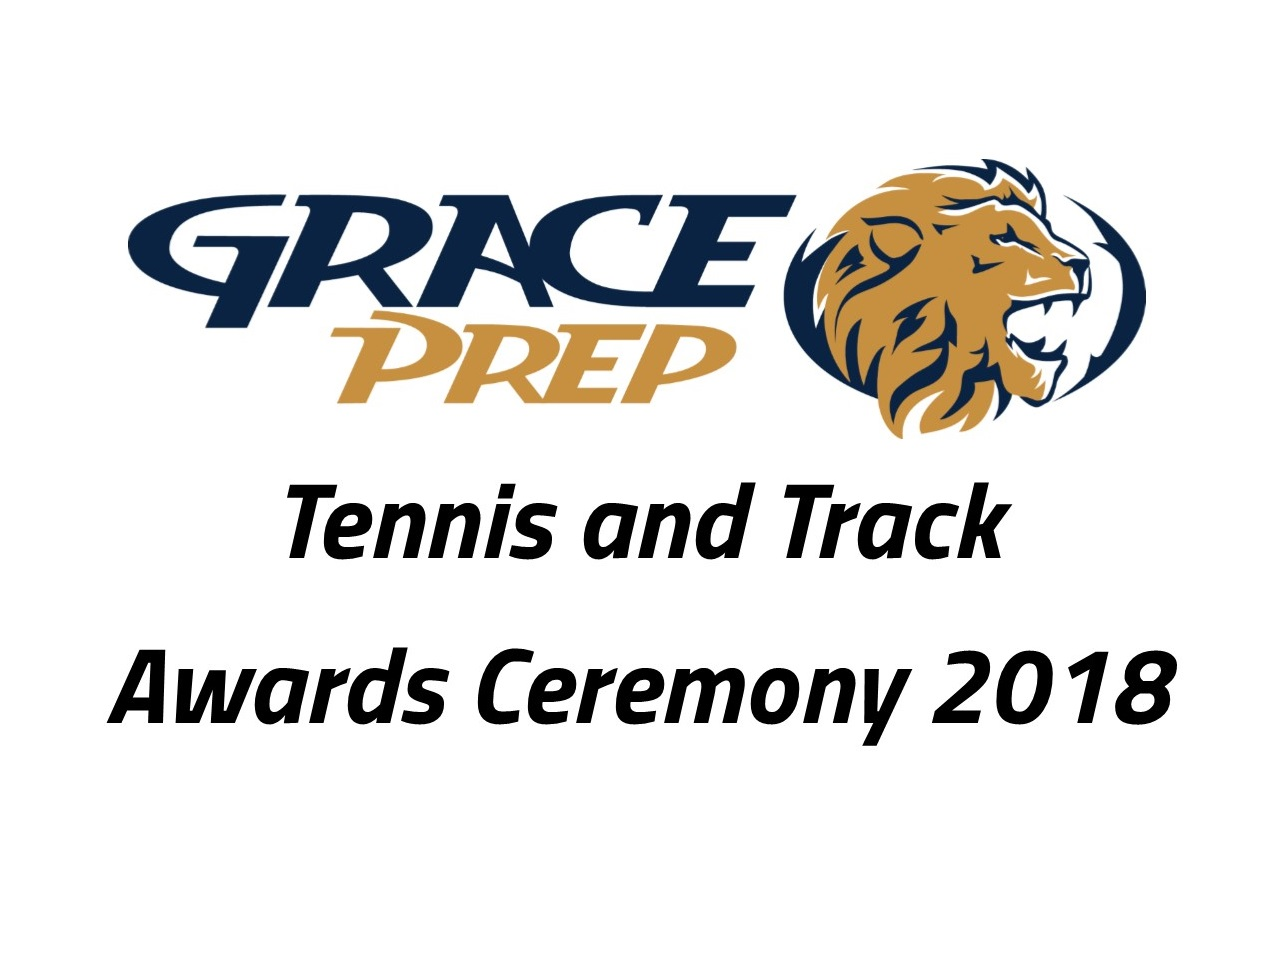 Tennis and Track Awards Ceremony